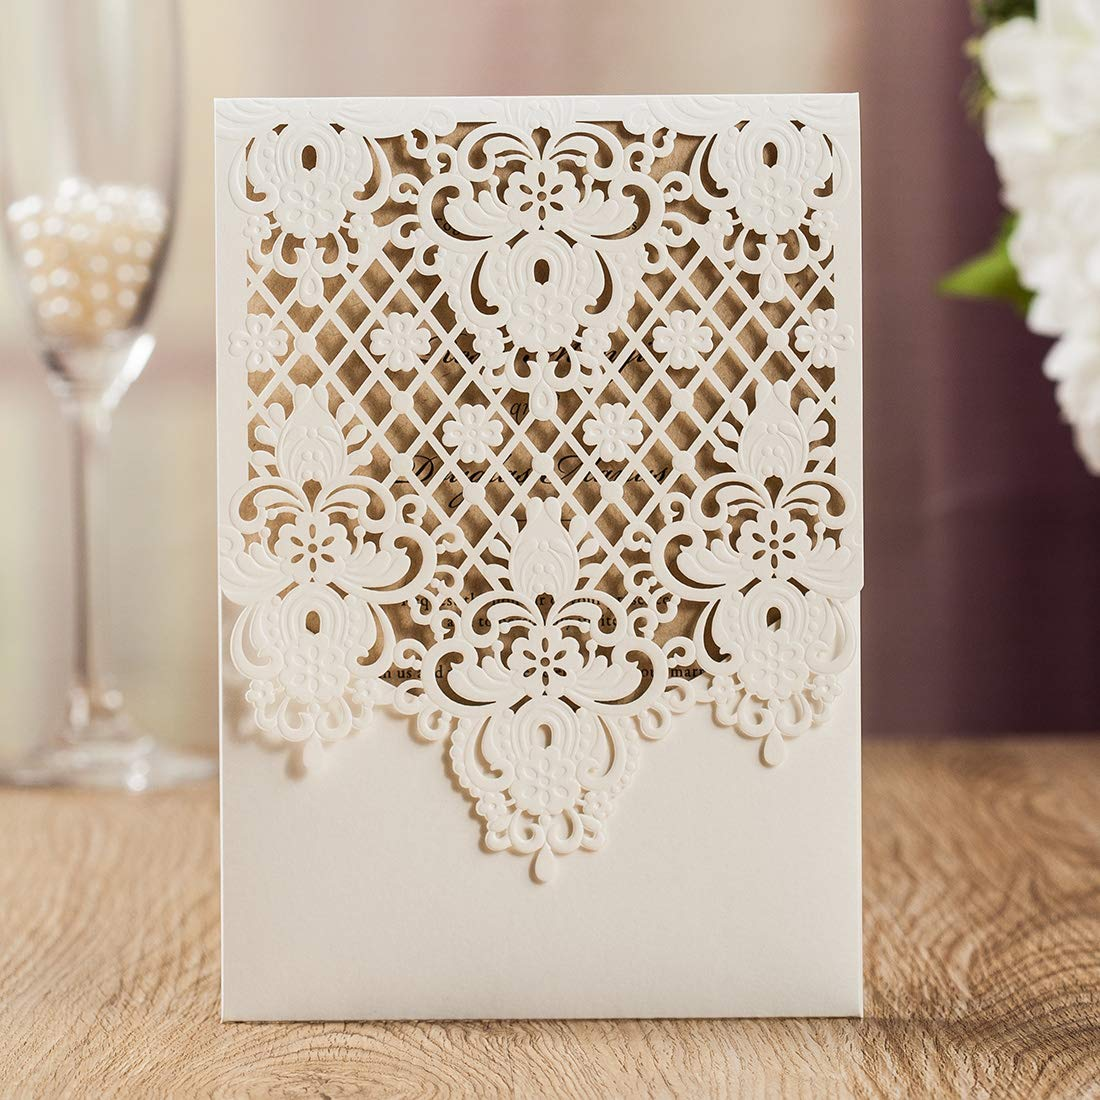 WISHMADE 50 White Floral Laser Cut Invitation Cardstock with Envelopes, Elegant Invitation kit Personalized, for Wedding Bridal Shower Engagement Birthday Party Quinceanera